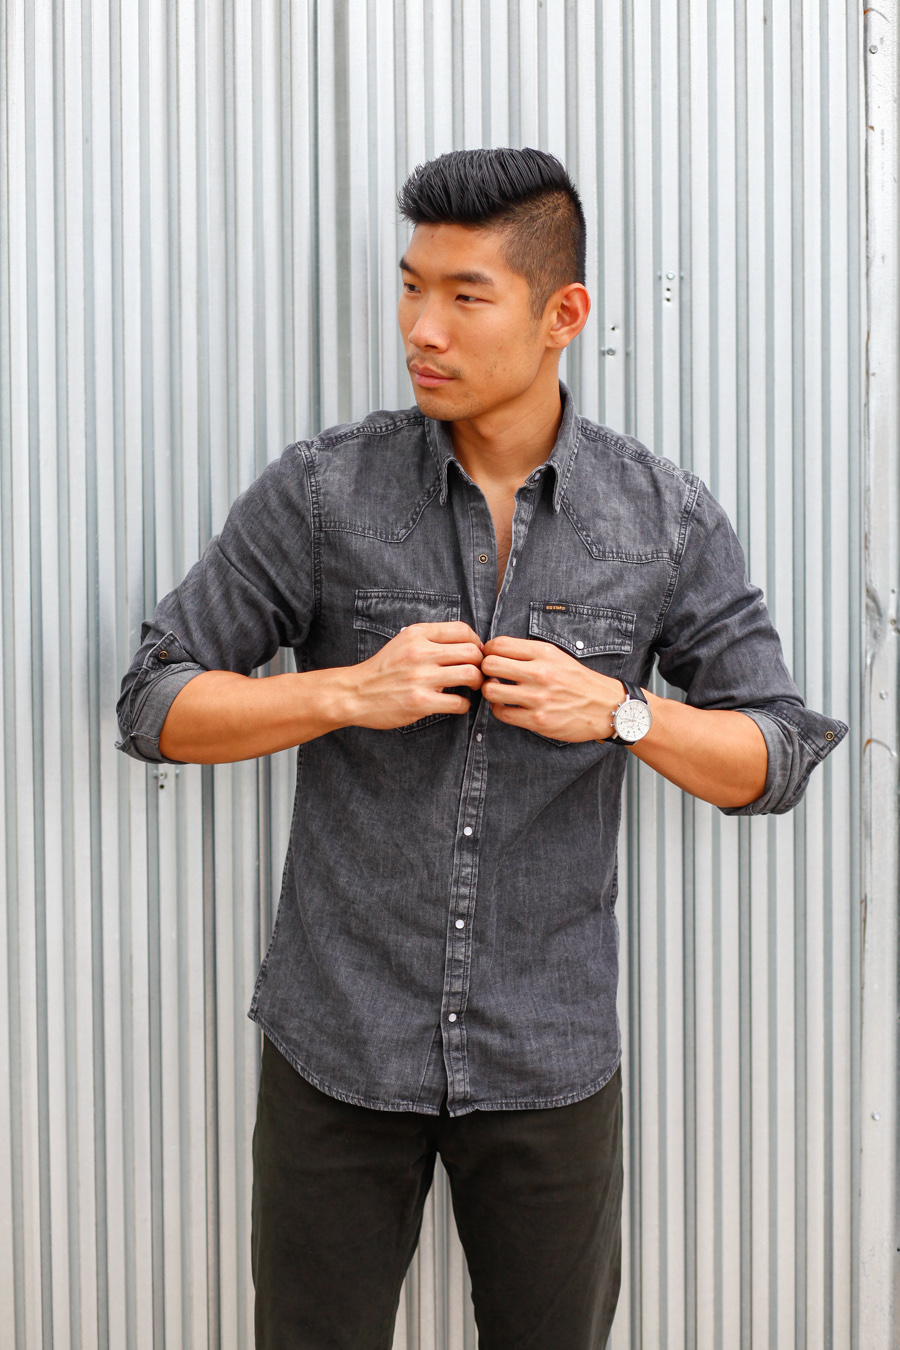 Levitate Style, Menswear, Weekend Casual Style, Big Star Denim Chambray Shirt and Jeans